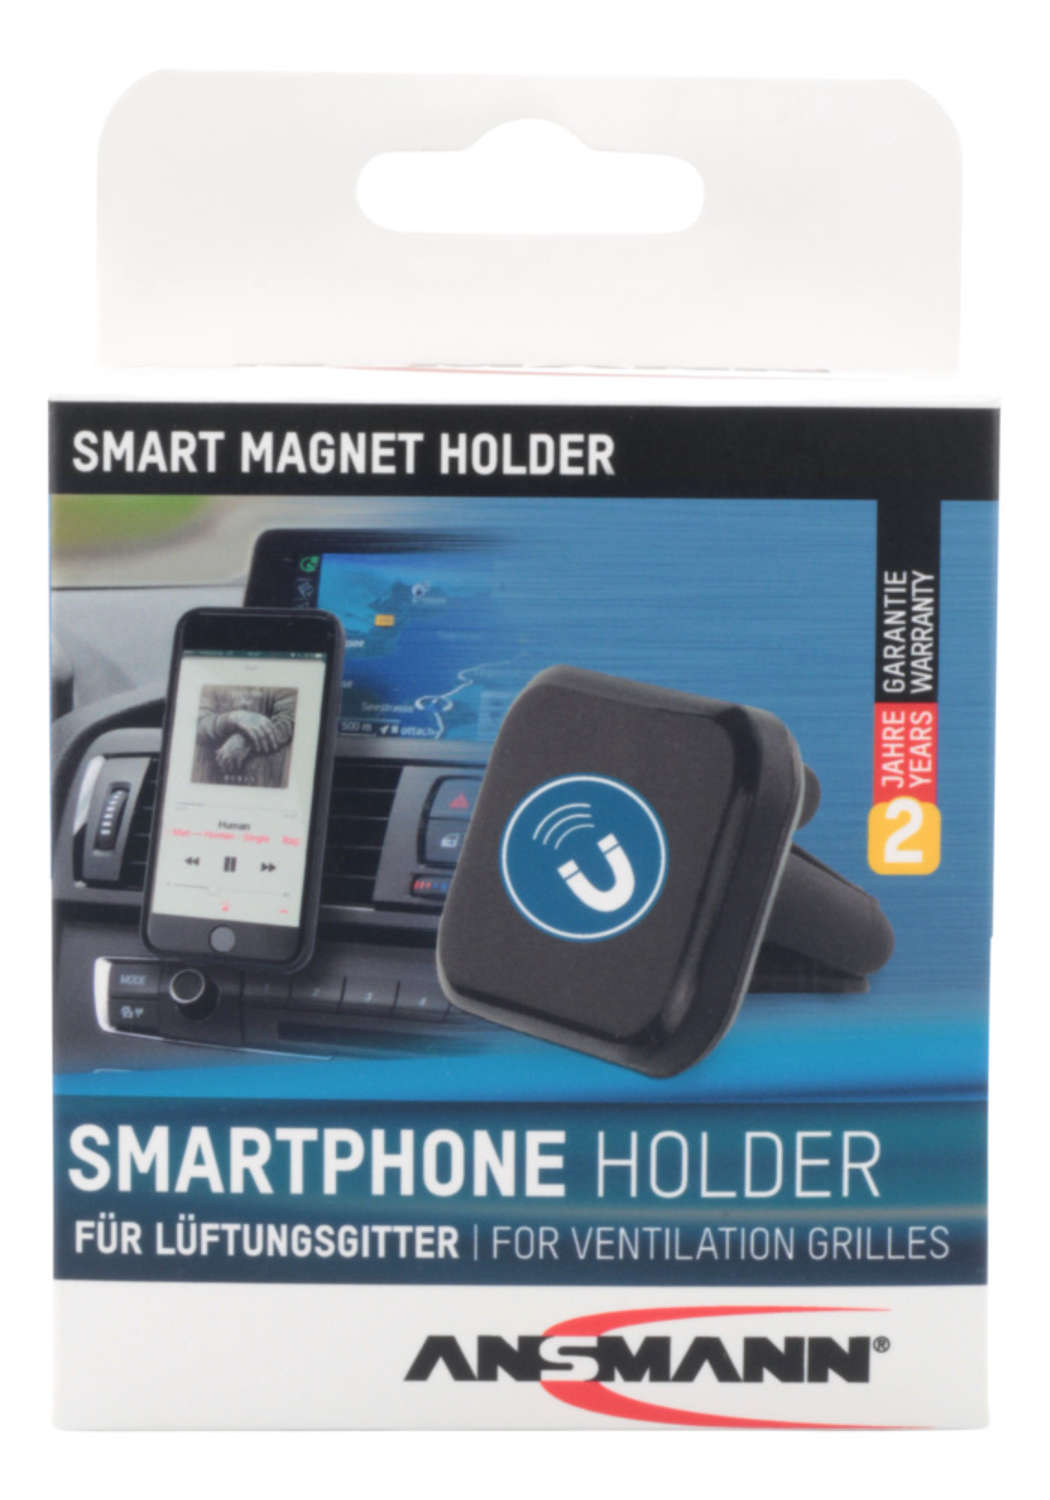 1700-0069_Smart-Magnet-Holder_cb_7